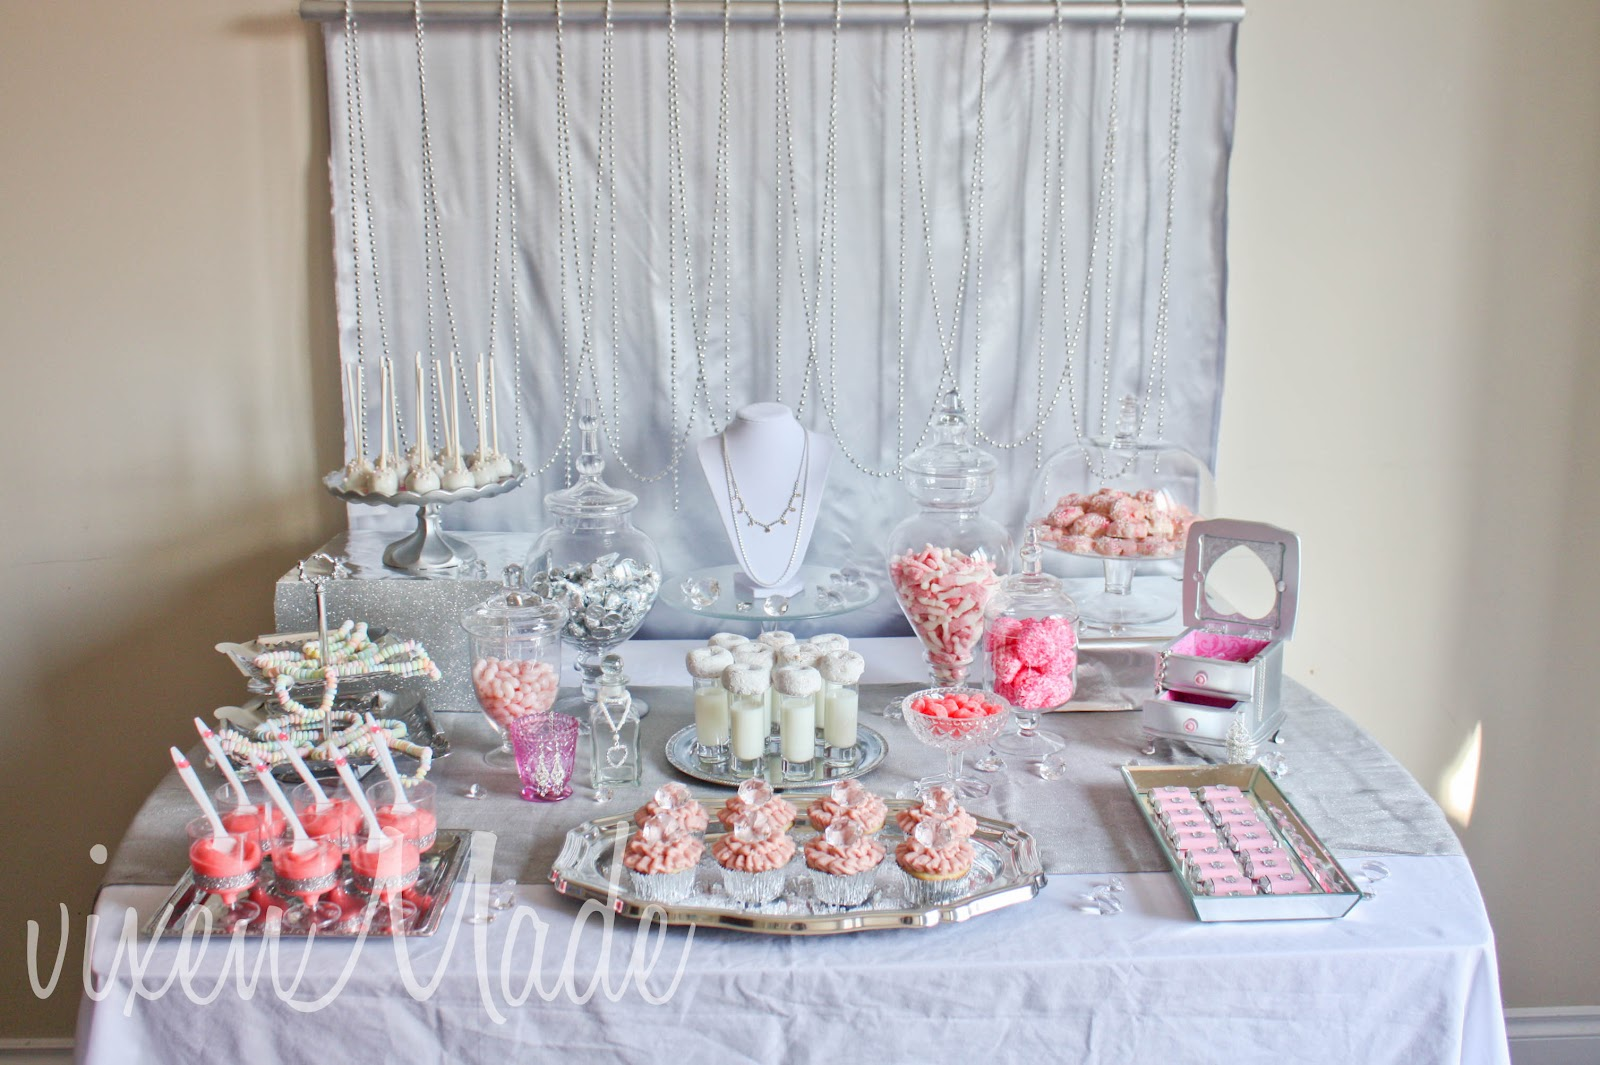 Girly Bling Themed Party - vixenmade parties